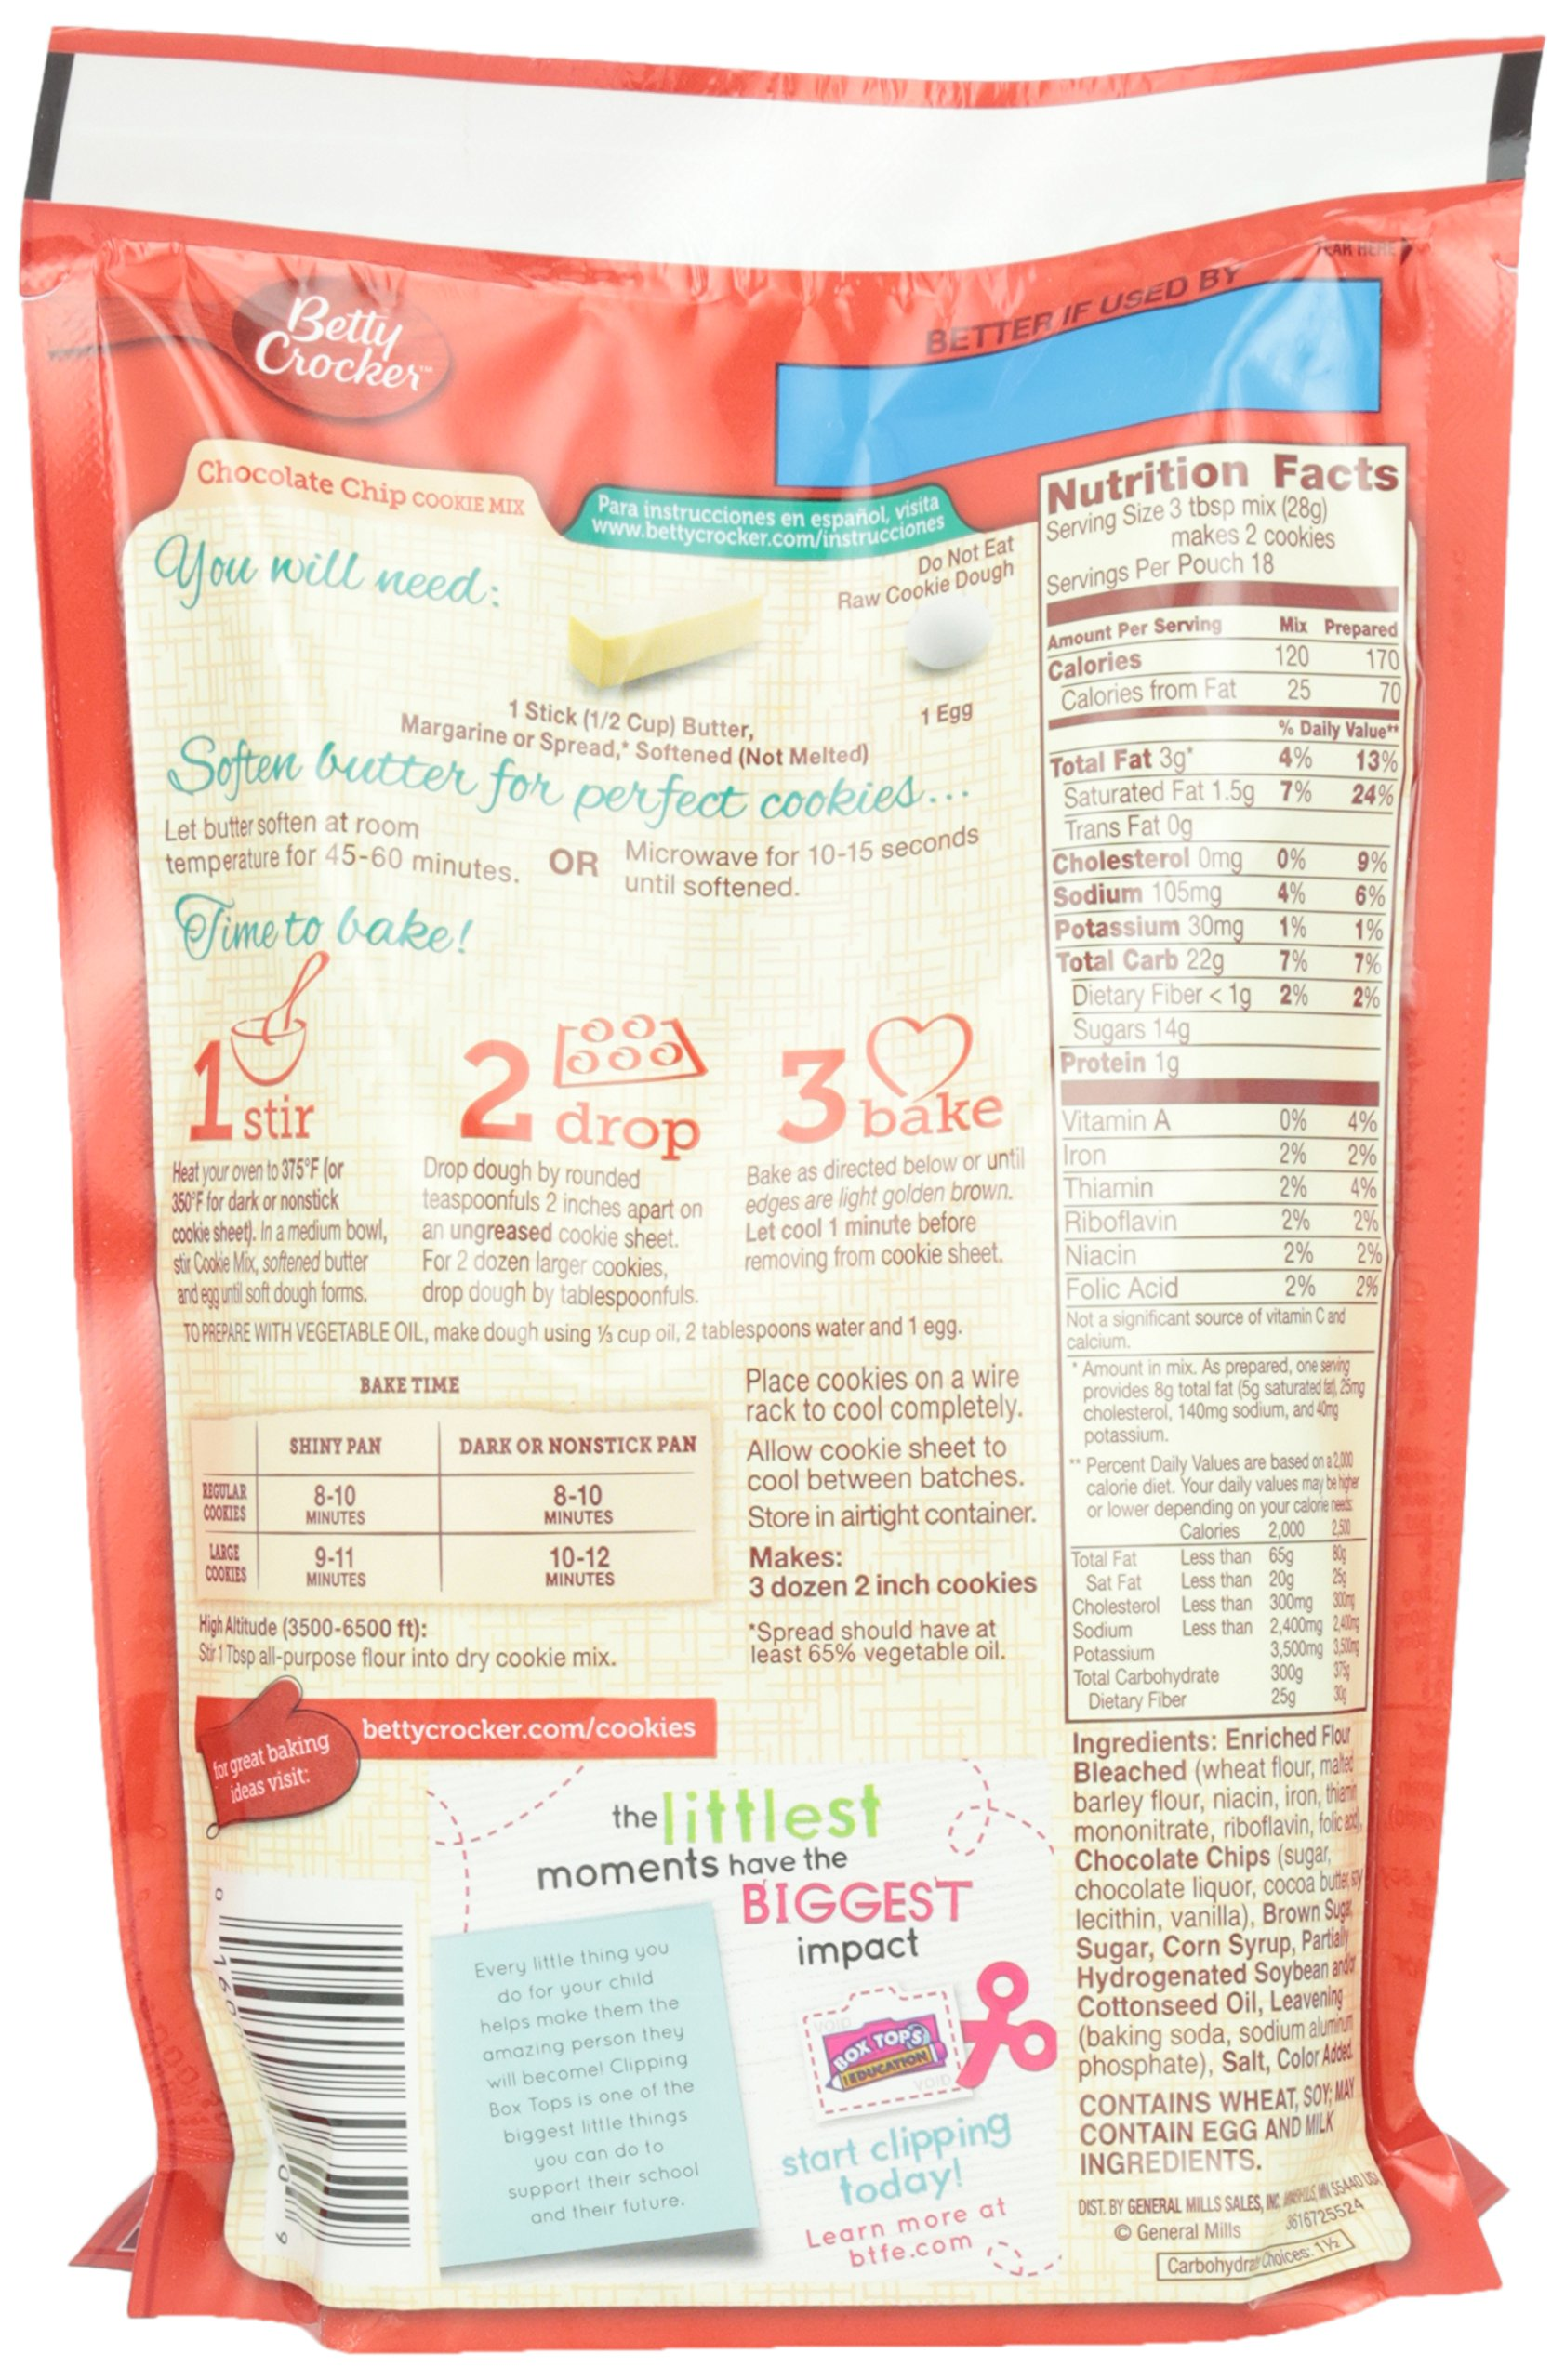 Betty Crocker Cookie Mix, Chocolate Chip, 17.5 oz Pouch (Pack of 12) by Betty Crocker (Image #4)